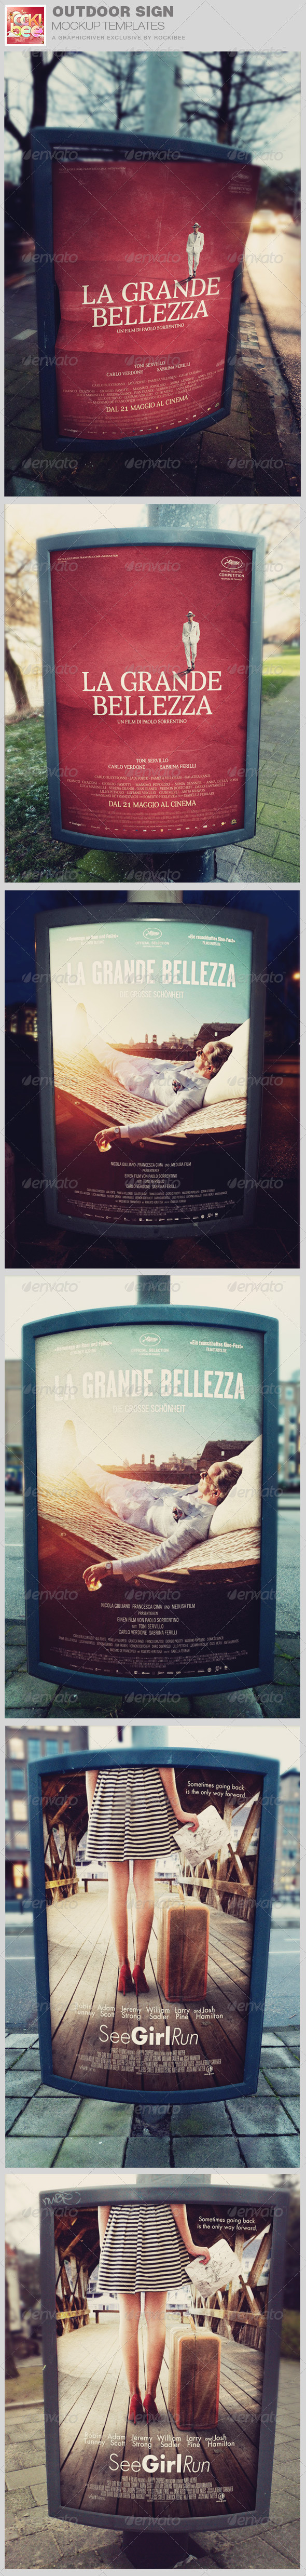 GraphicRiver Outdoor Poster Sign Mockup Templates 8552504